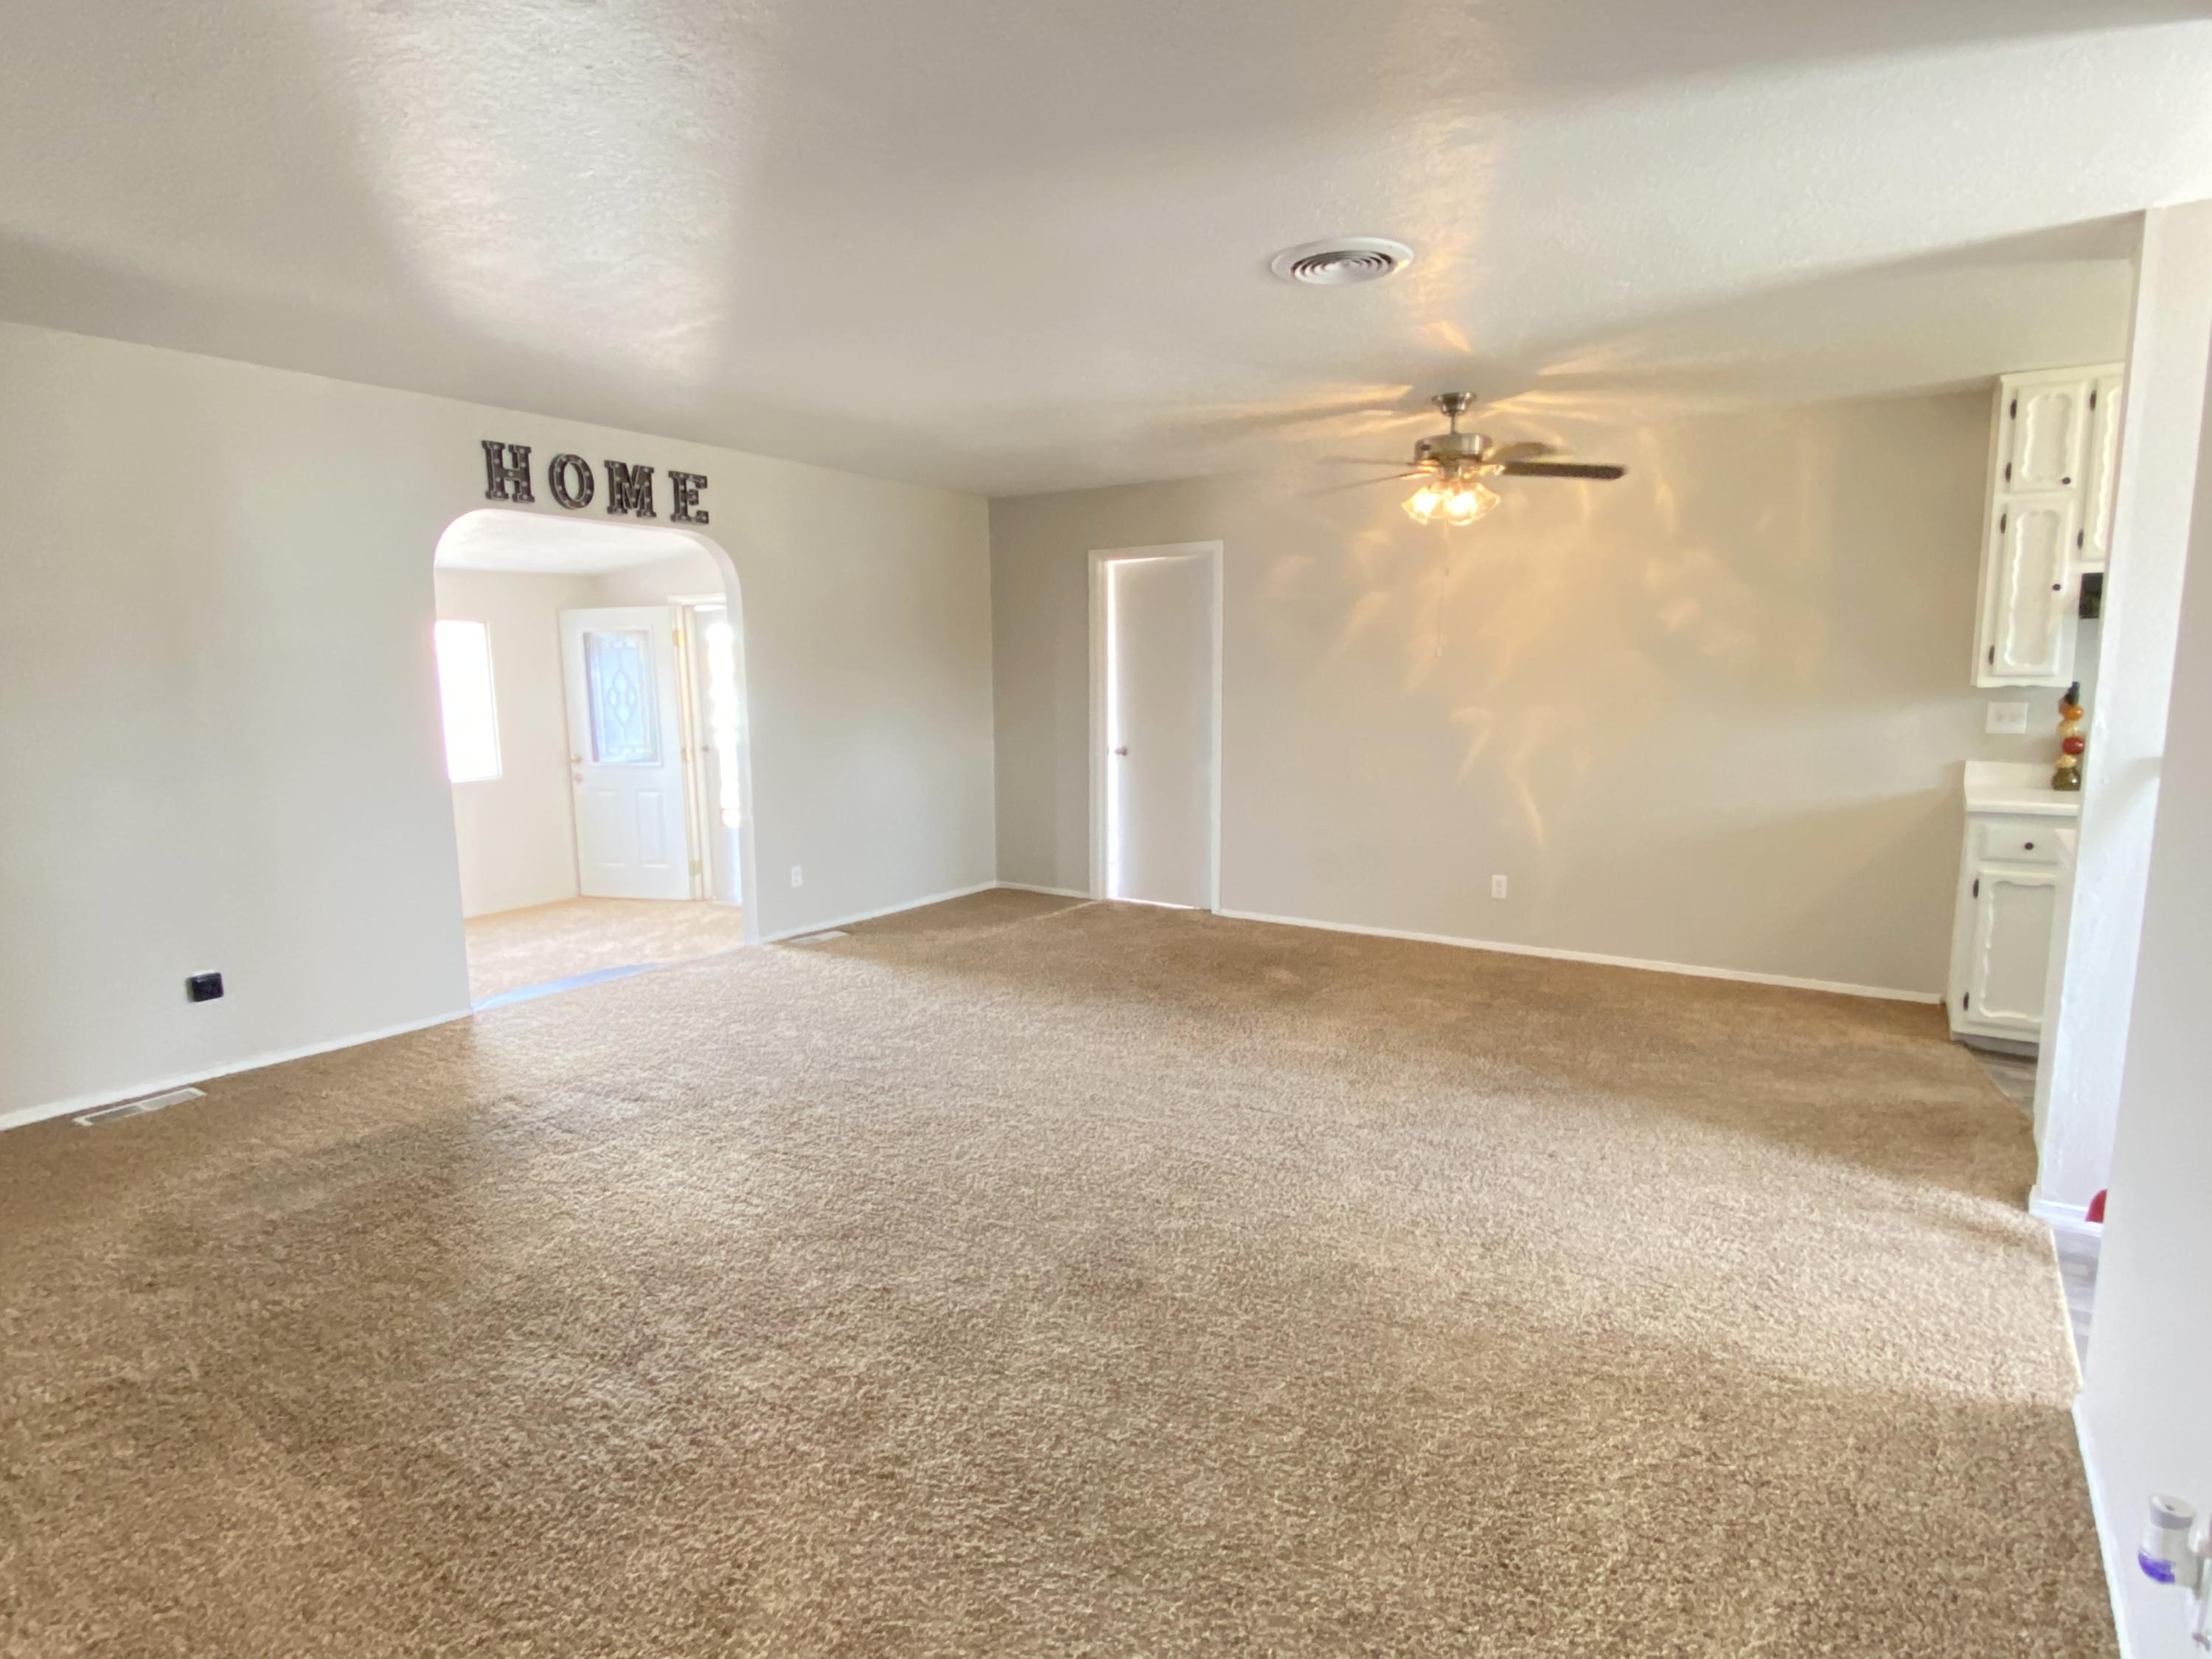 Charming 1,300 SF Home Located in the Quiet Neighborhood of the Luna Addition.  3 Bedroom, 1,5 Baths and a 1 Car Garage.  BIG Lot is almost 1/4 Acre.  Large 250 SF Living Room PLUS a 200 SF Den/Game Room/Office etc. Master Suite has Walk-In Closet and Bonus 2nd Closet.  Newer Carpet Throughout, Updated Kitchen and Bathrooms.  BIG Backyard with Storage Shed, Lawn and Several Trees.  Back Yard access for storing RV, Boat, etc.  Close to Several Amenities: Grocery, Retail, Restaurants, Home Improvement Stores, the Luna Mansion, Teofilo's and the Rail Runner Station.